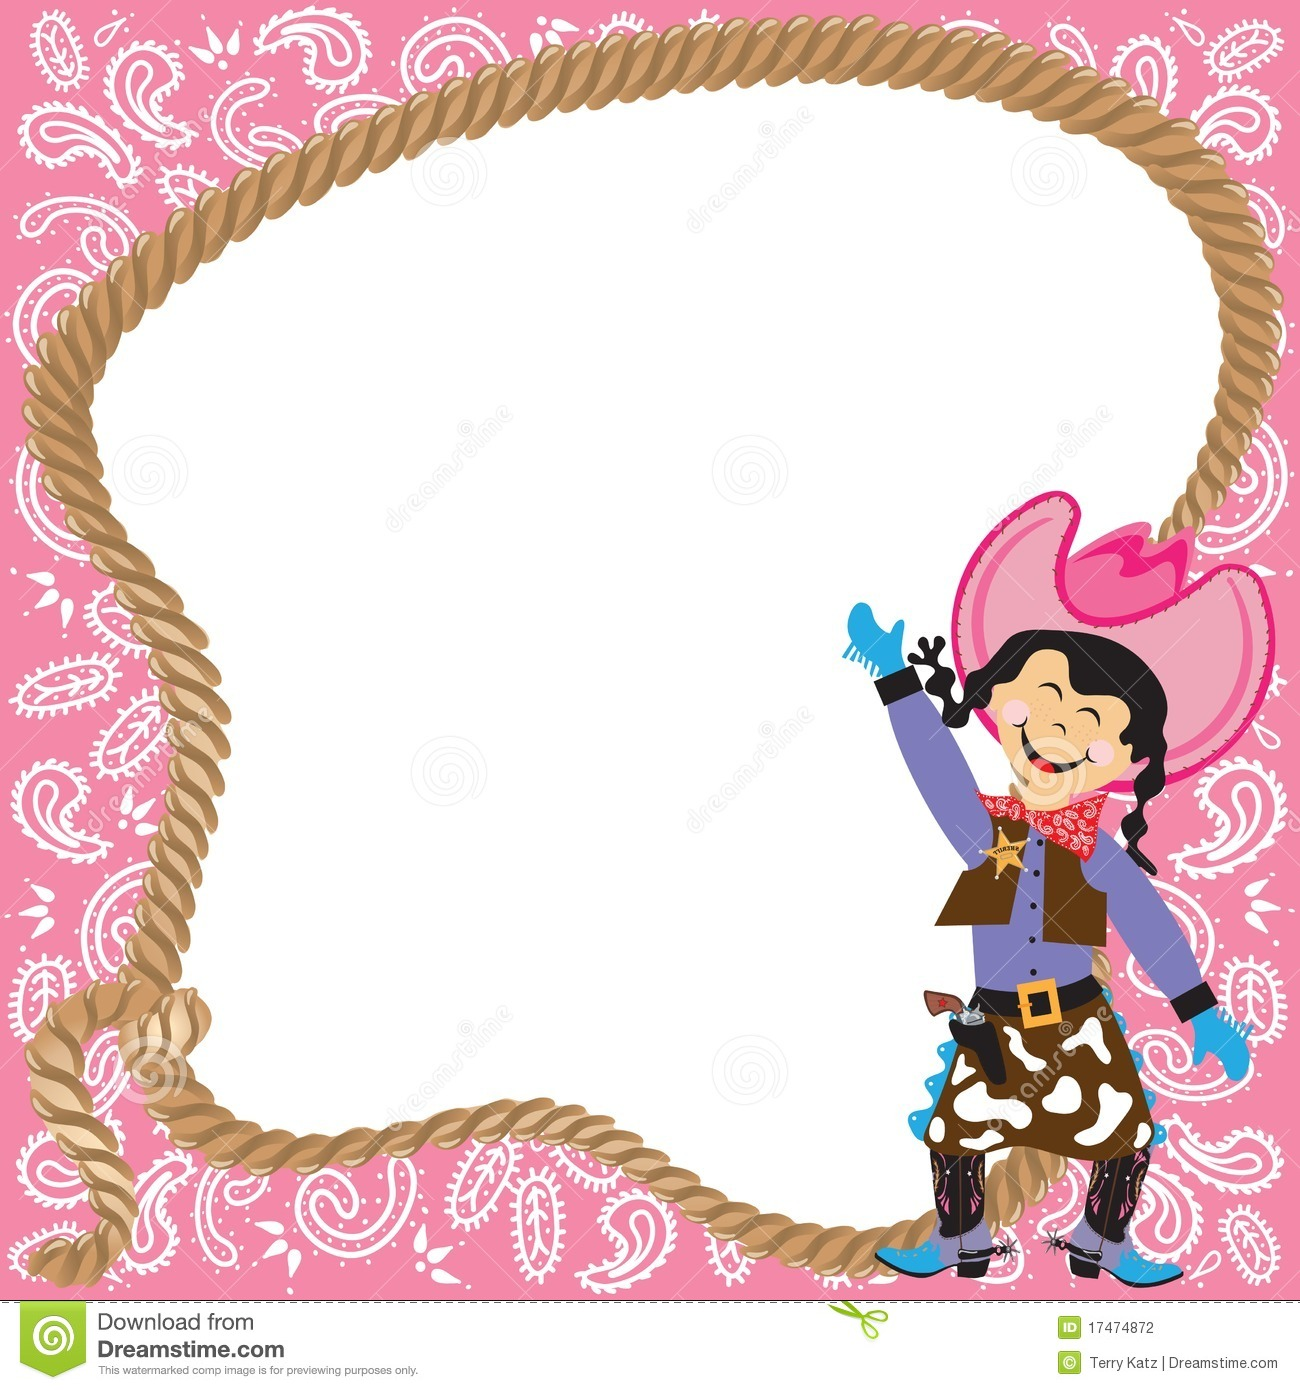 Cowboy party invitation ideas - Cute Cowgirl Birthday Party Invitation Stock Photography Image